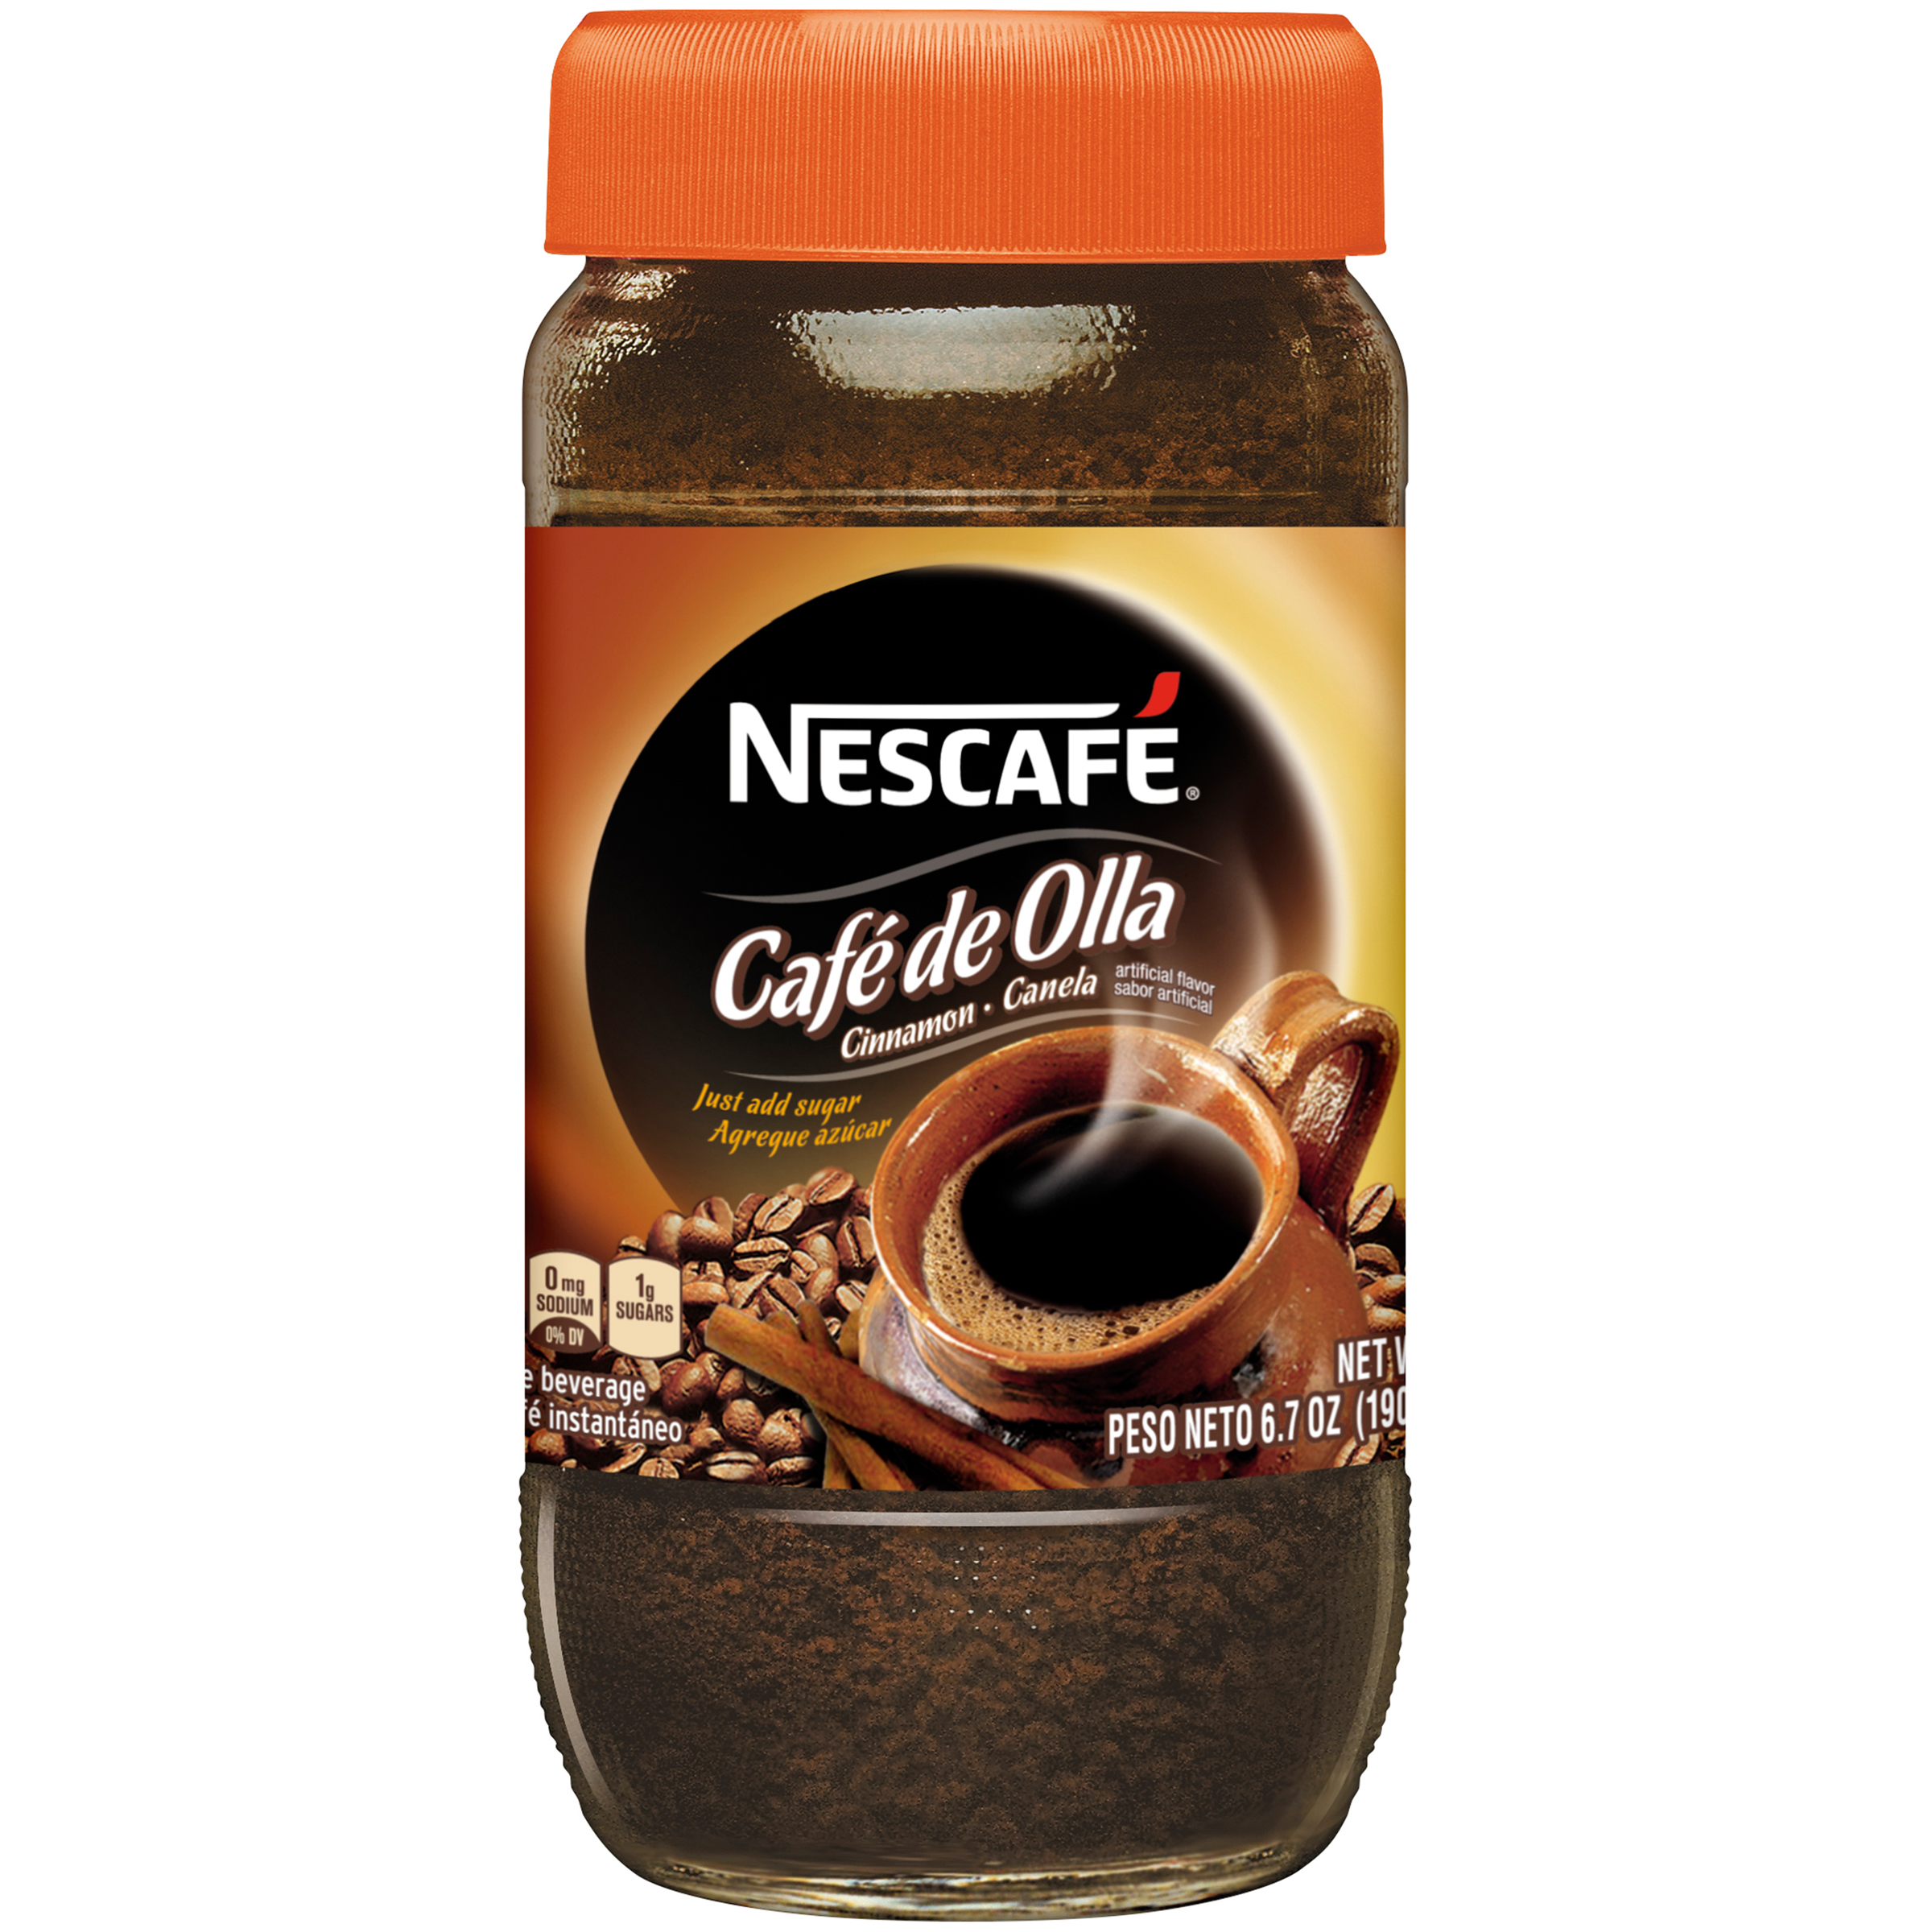 NESCAFE CAF�� DE OLLA Instant Coffee Beverage 6.7 oz. Jar